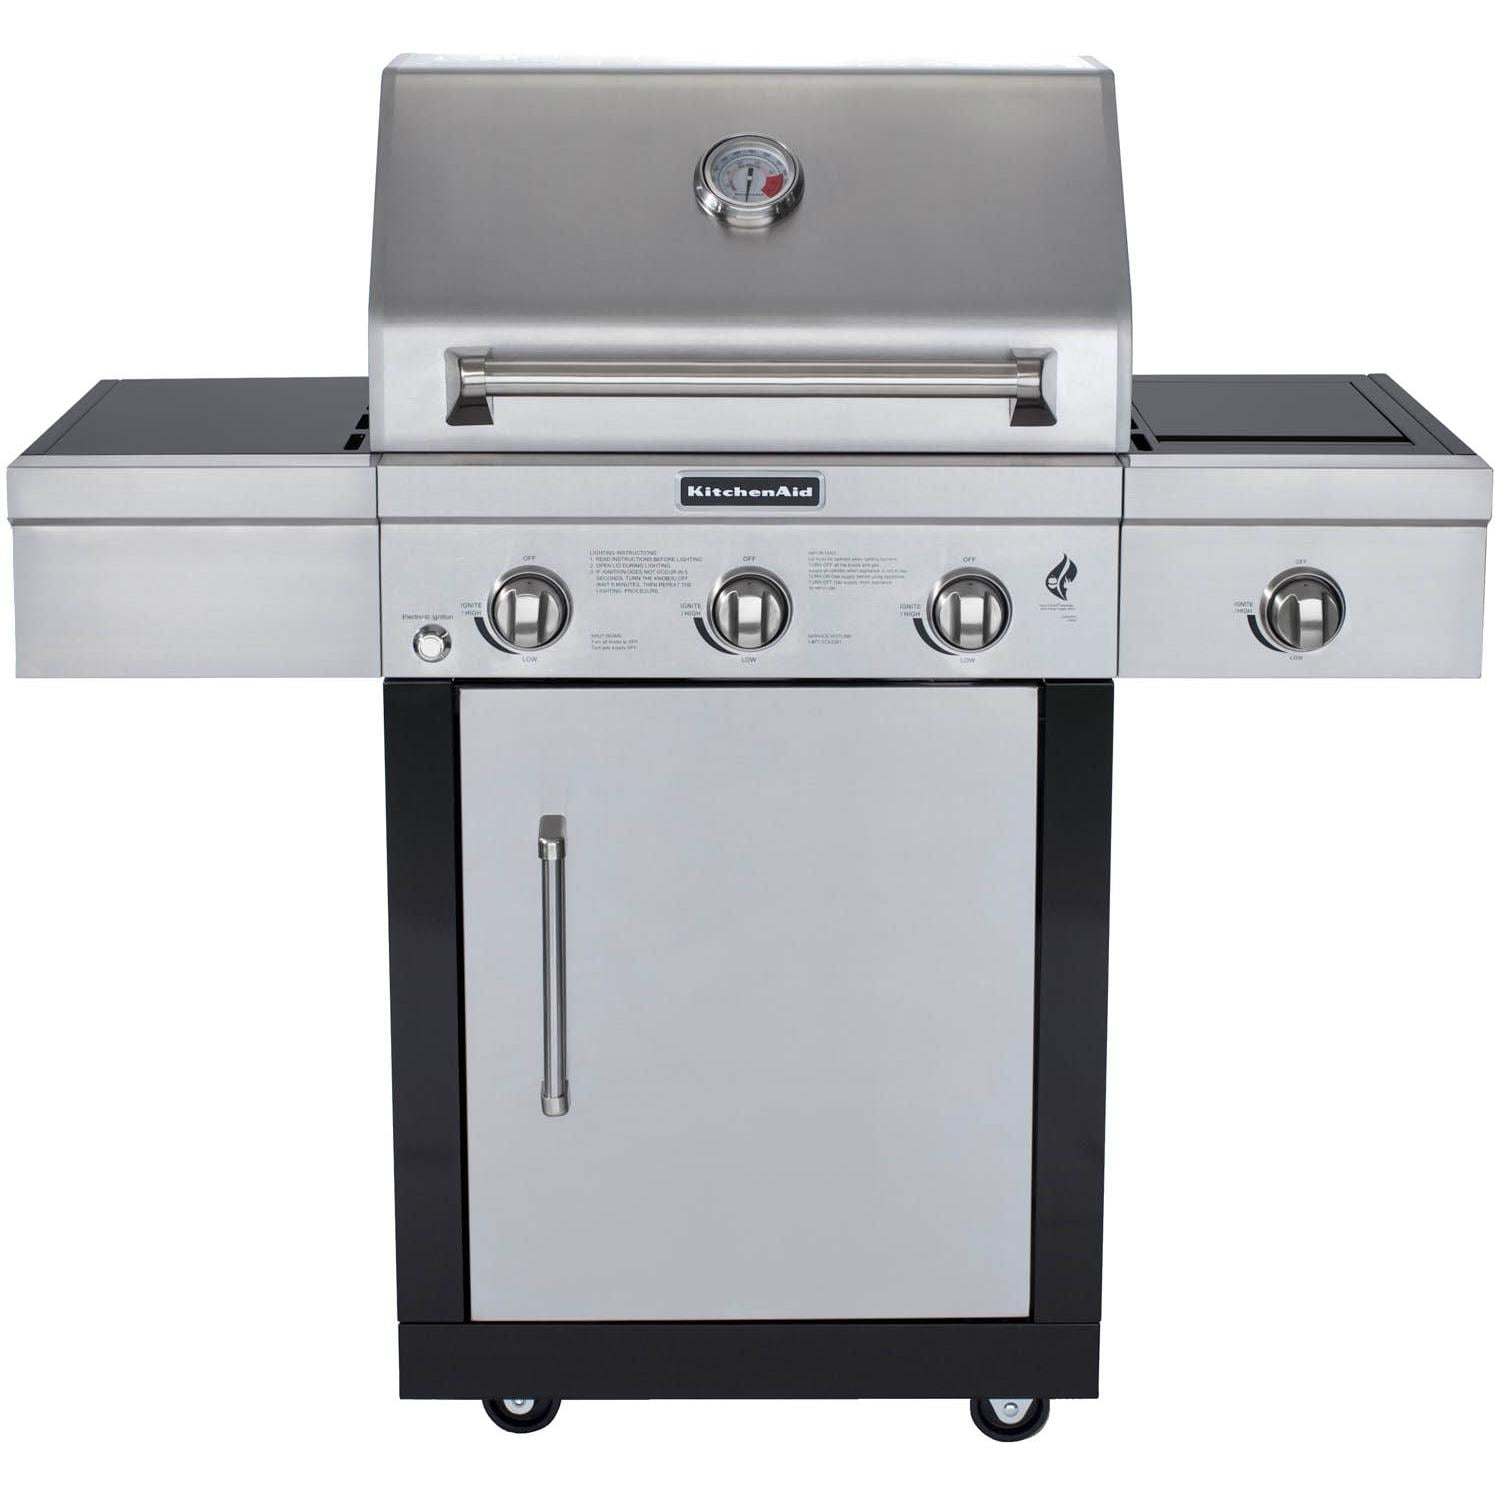 kitchen aid bbq awesome cabinets kitchenaid 25 inch propane gas grill on cart with side burner guys